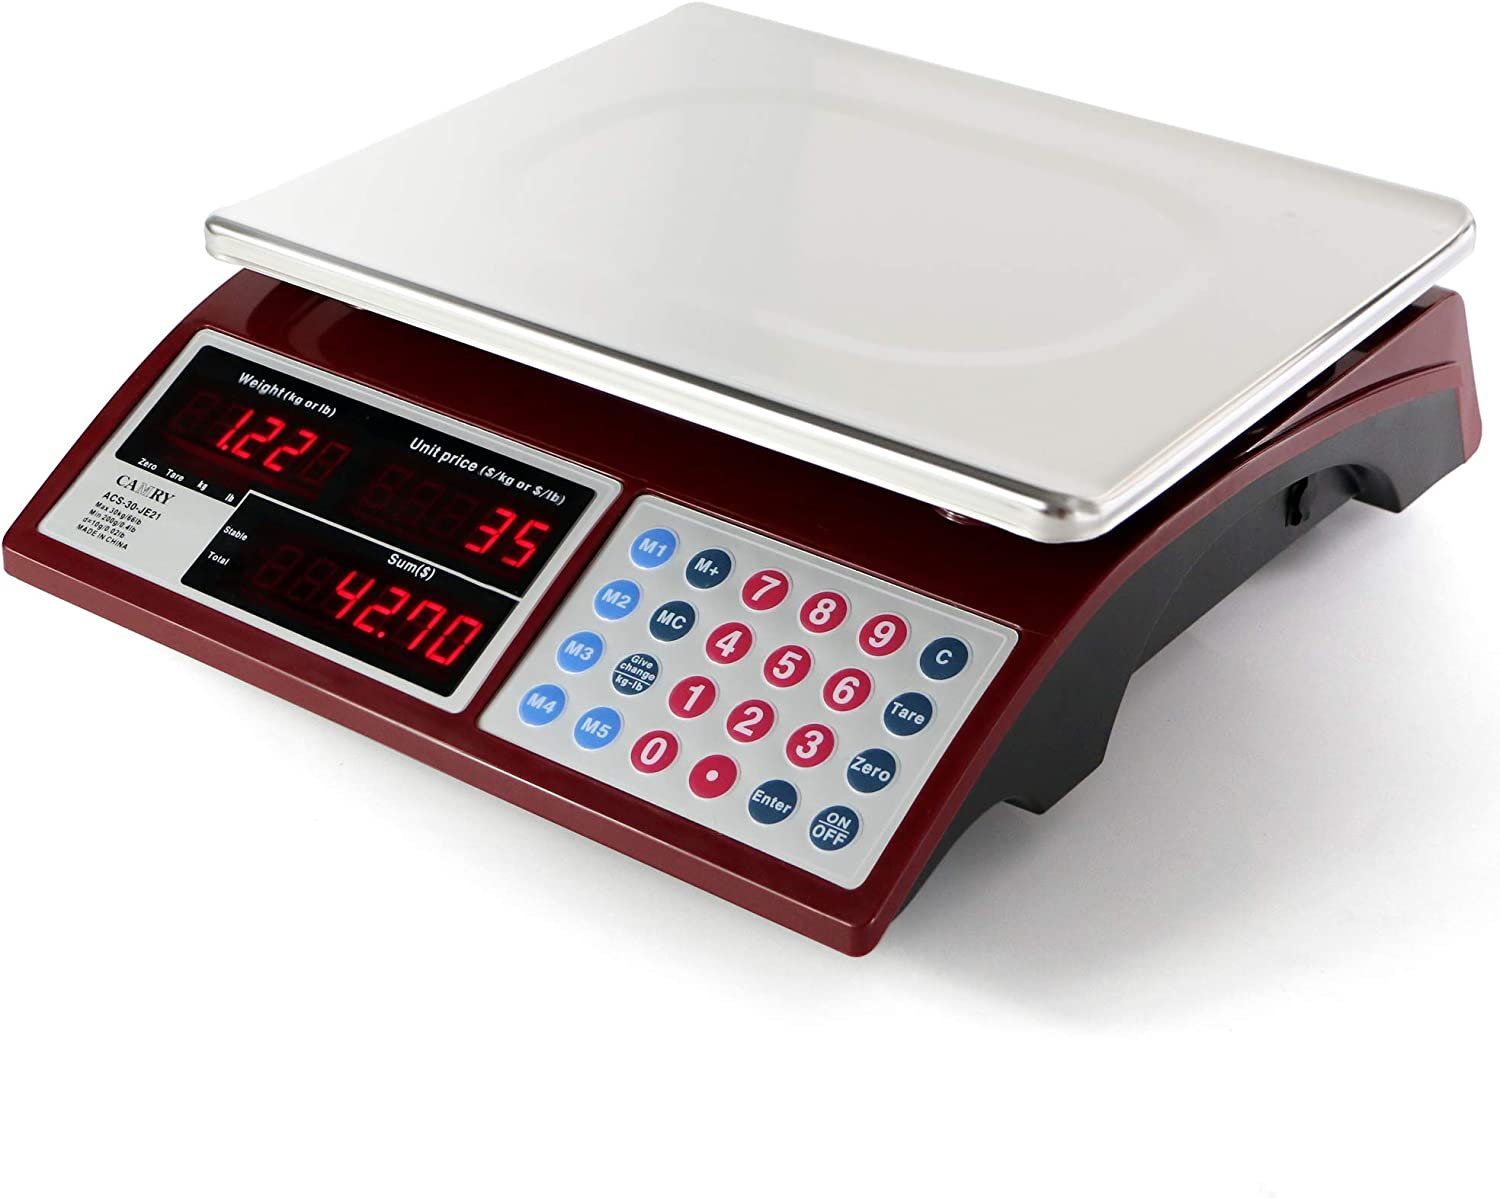 CAMRY Digital Commercial Price Scale 66lb / 30kg for Food Meat Fruit Produce with Dual Bright Red LED Display 15 Inches Platform Rechargeable Battery Included Not For Trade